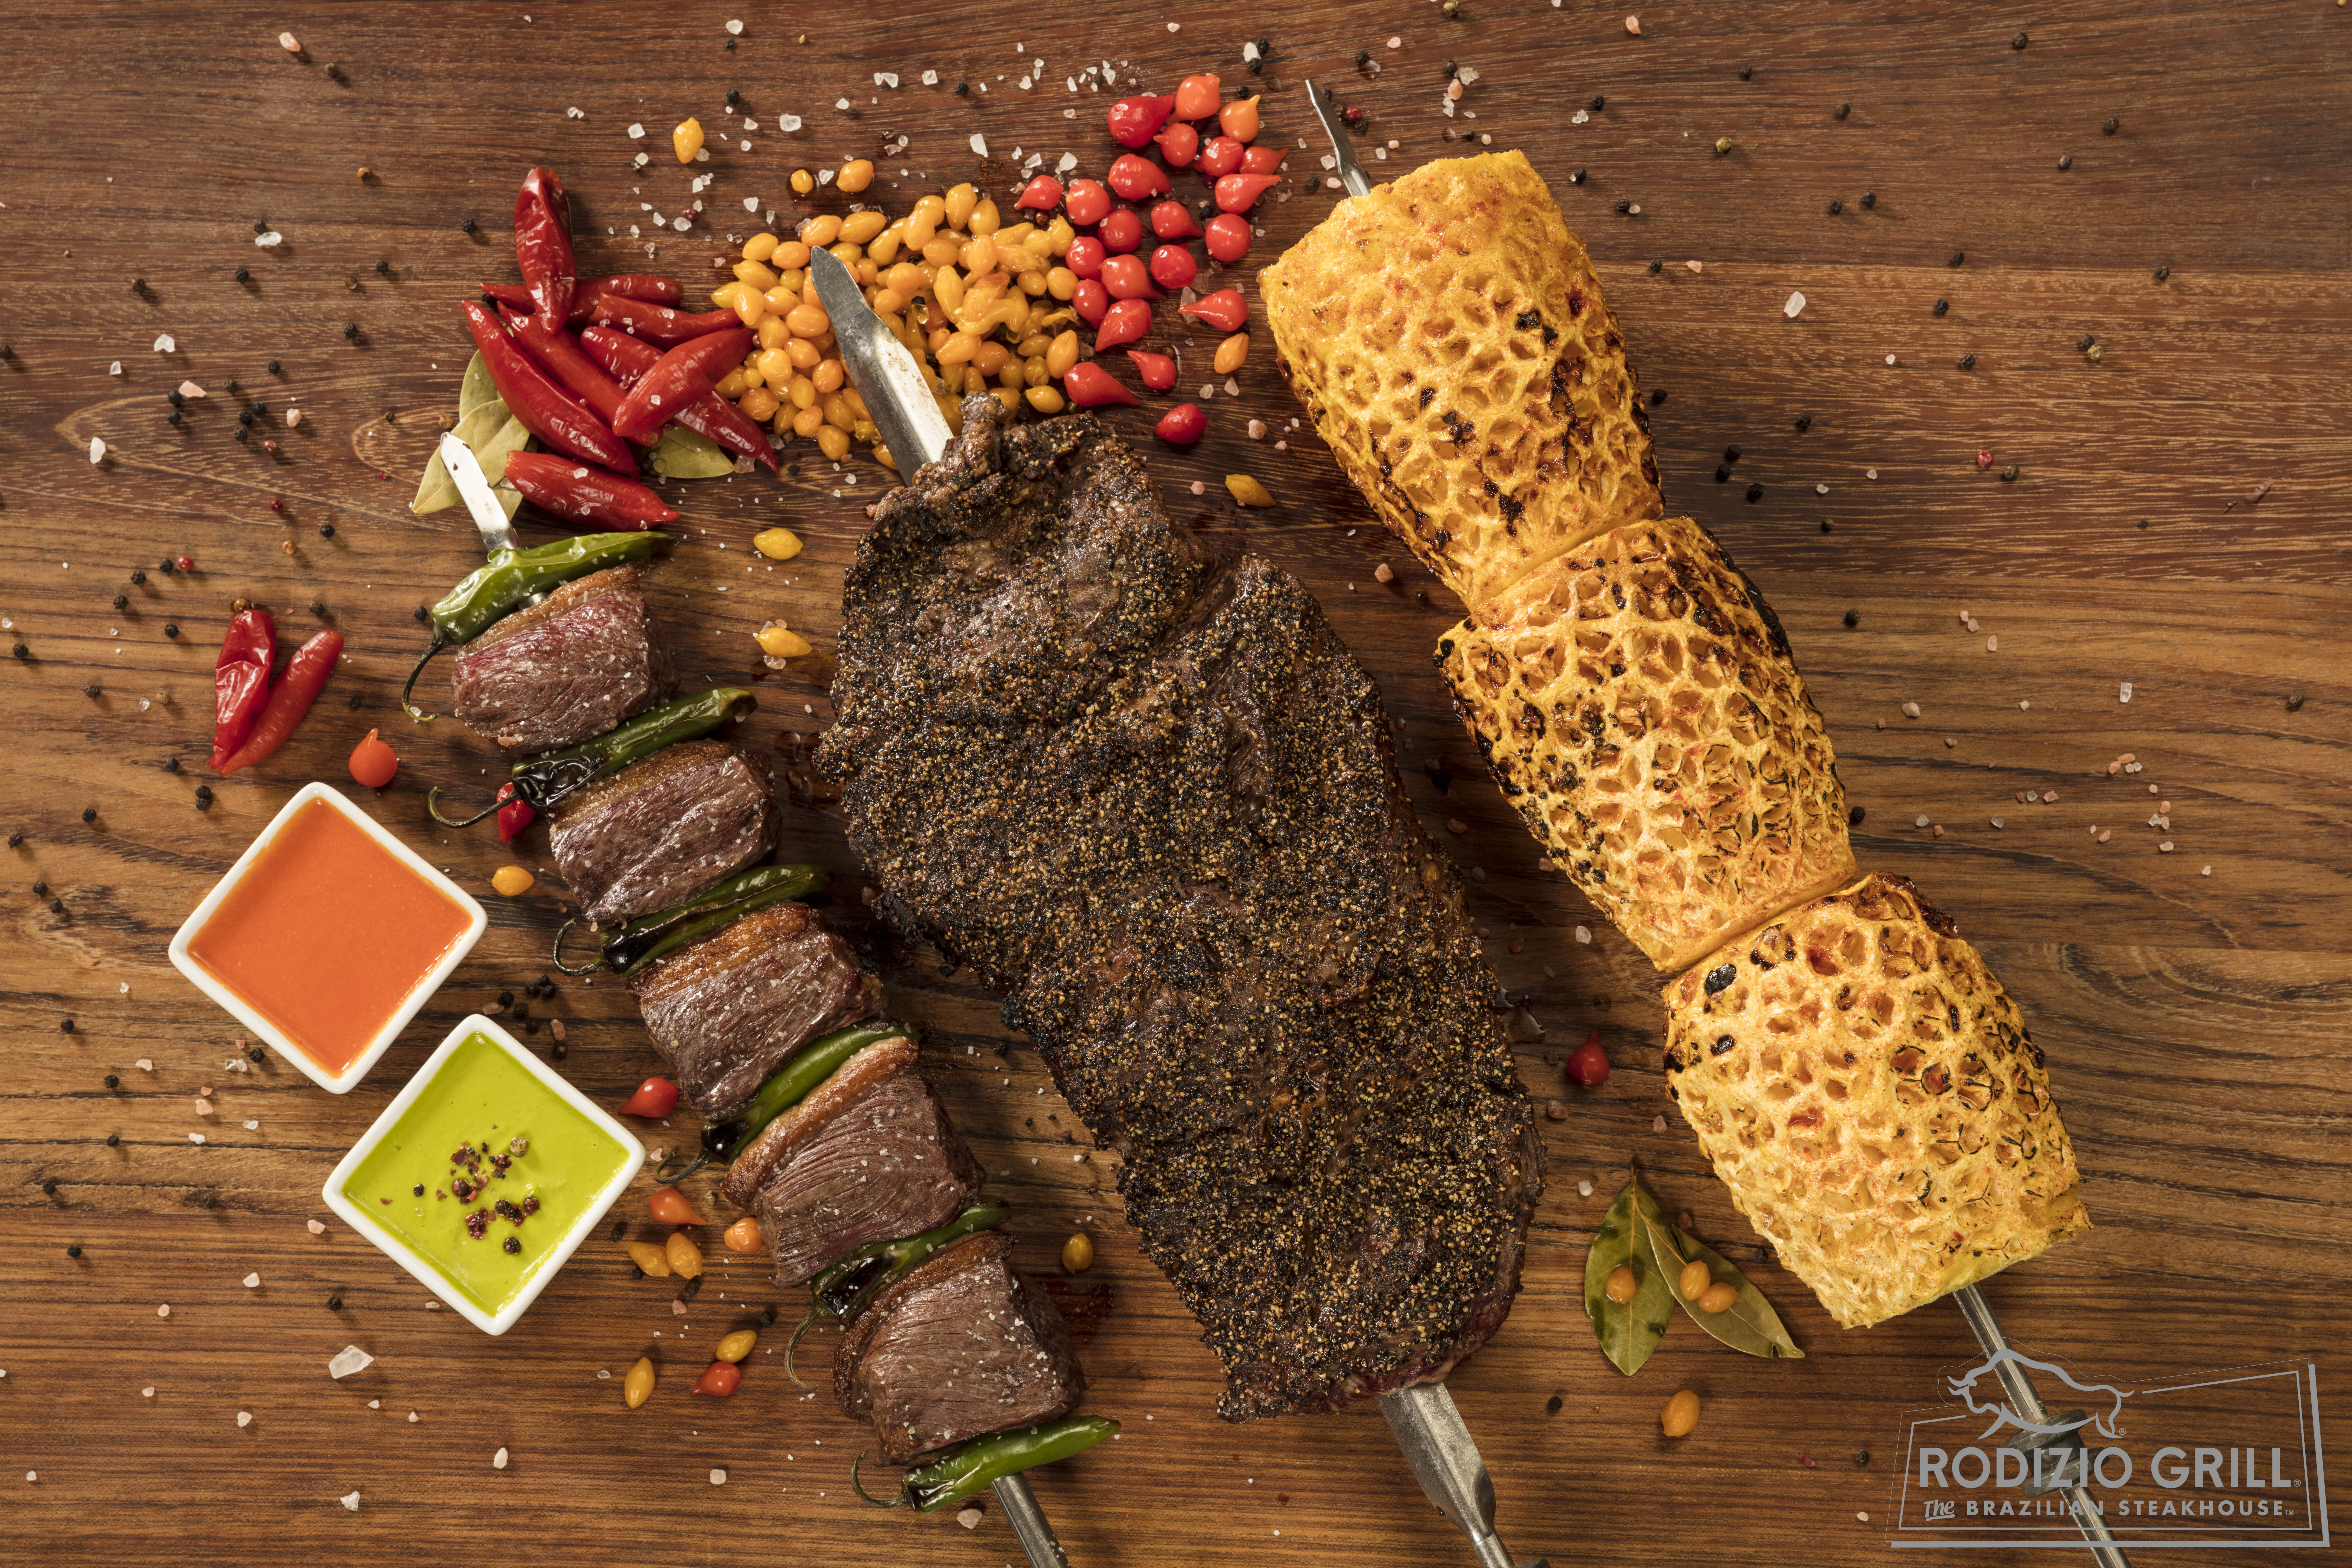 Rodizio OnFire Grilled Items